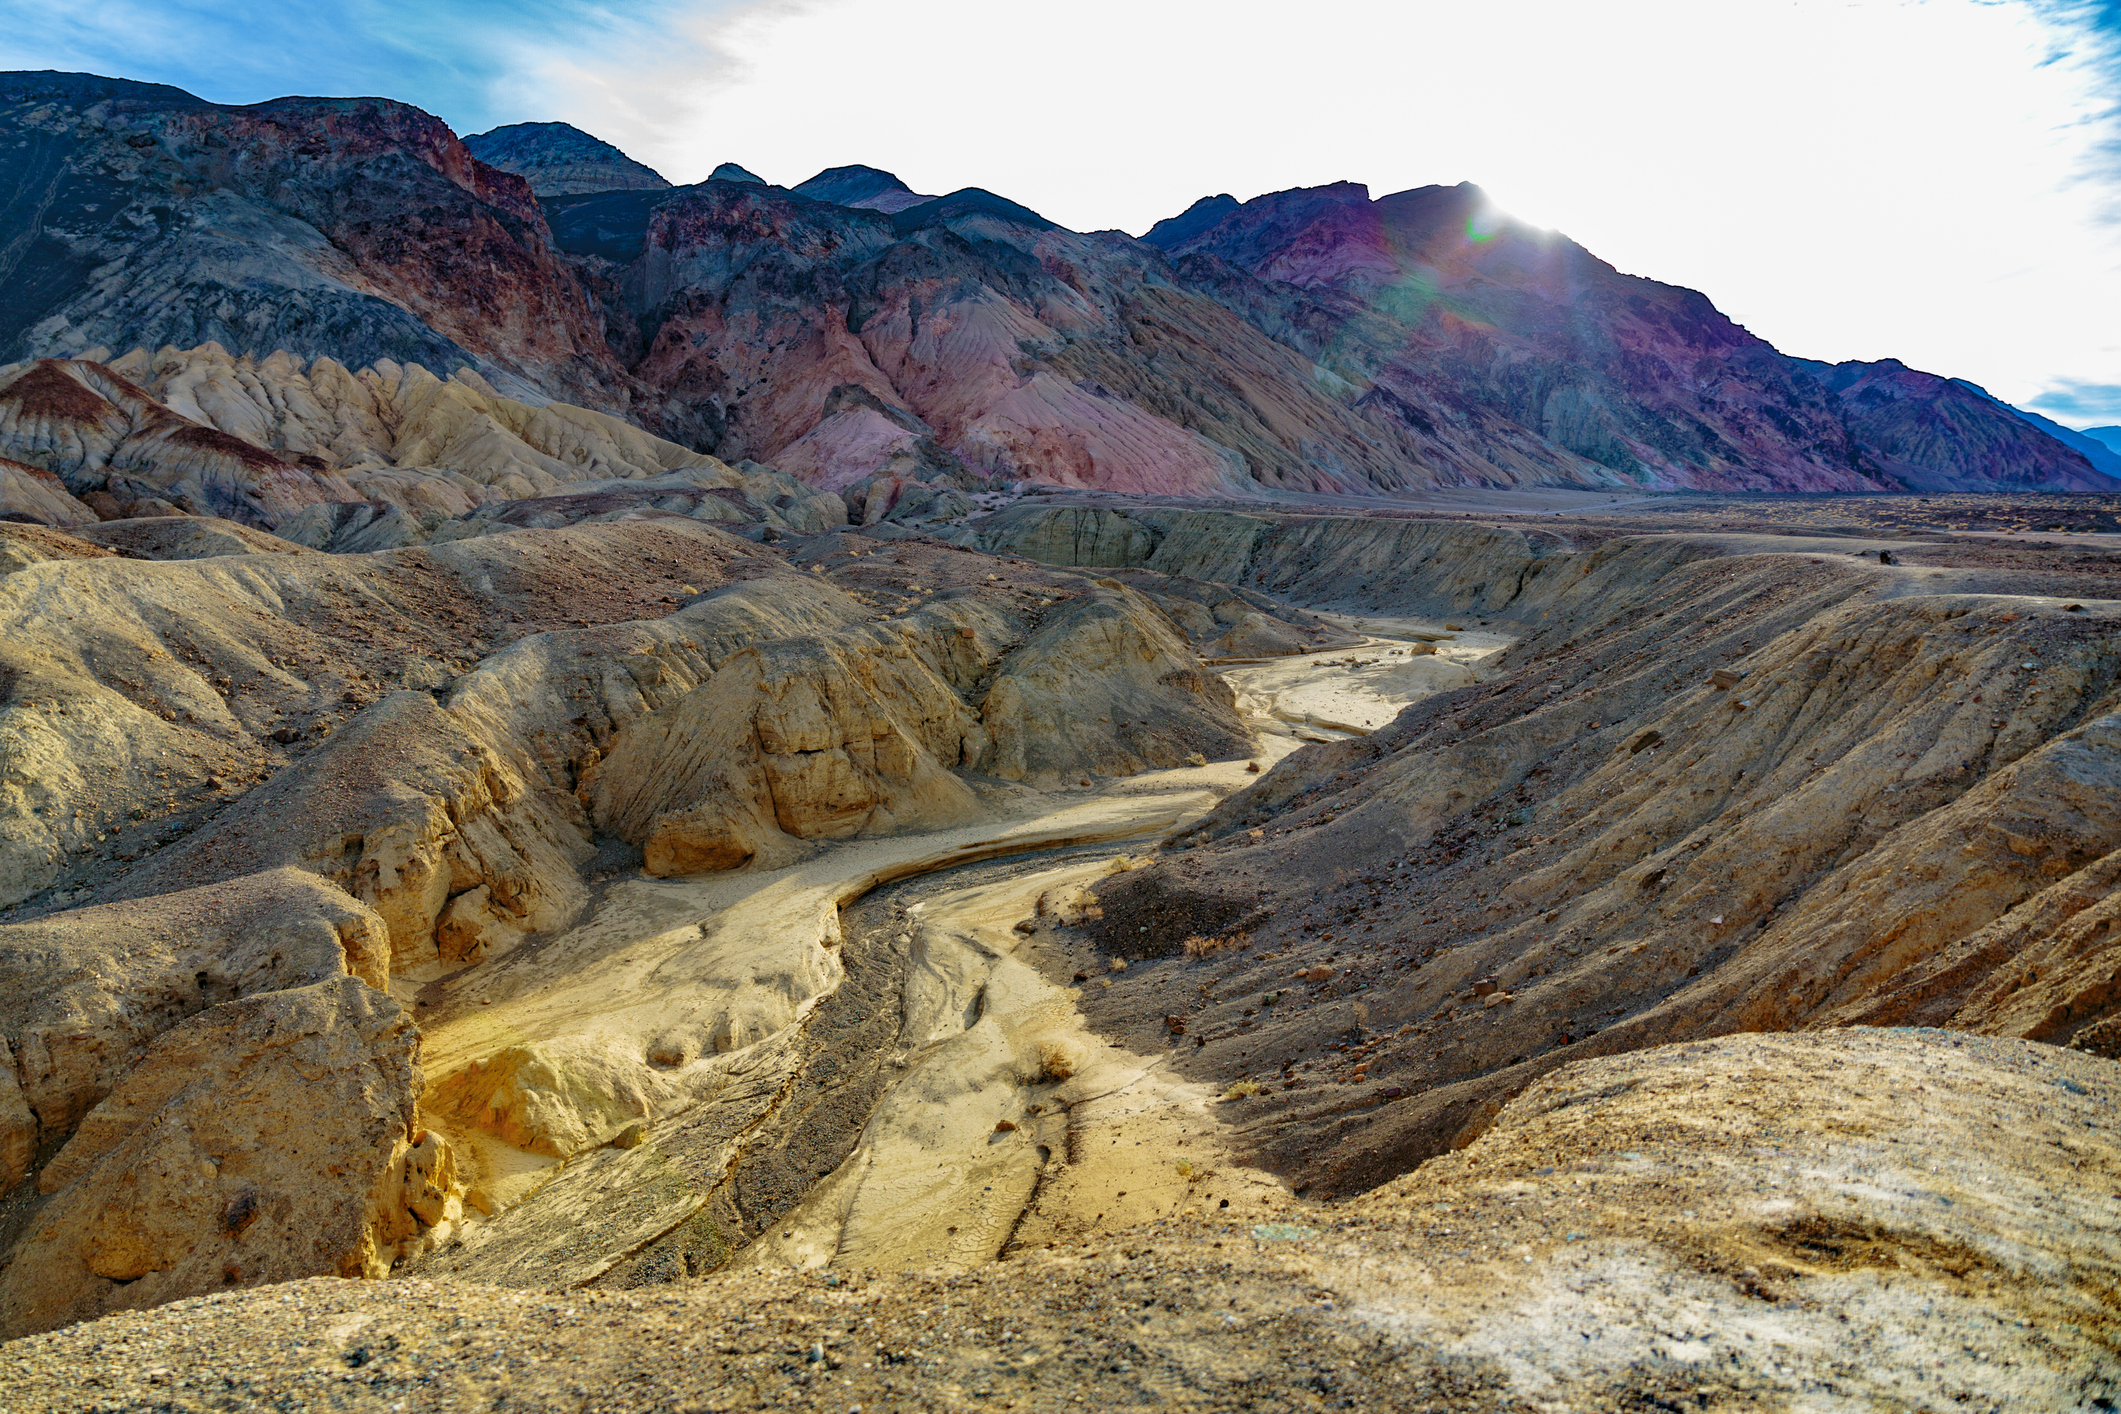 Multi-colored desert hillsides overlooking a wash.